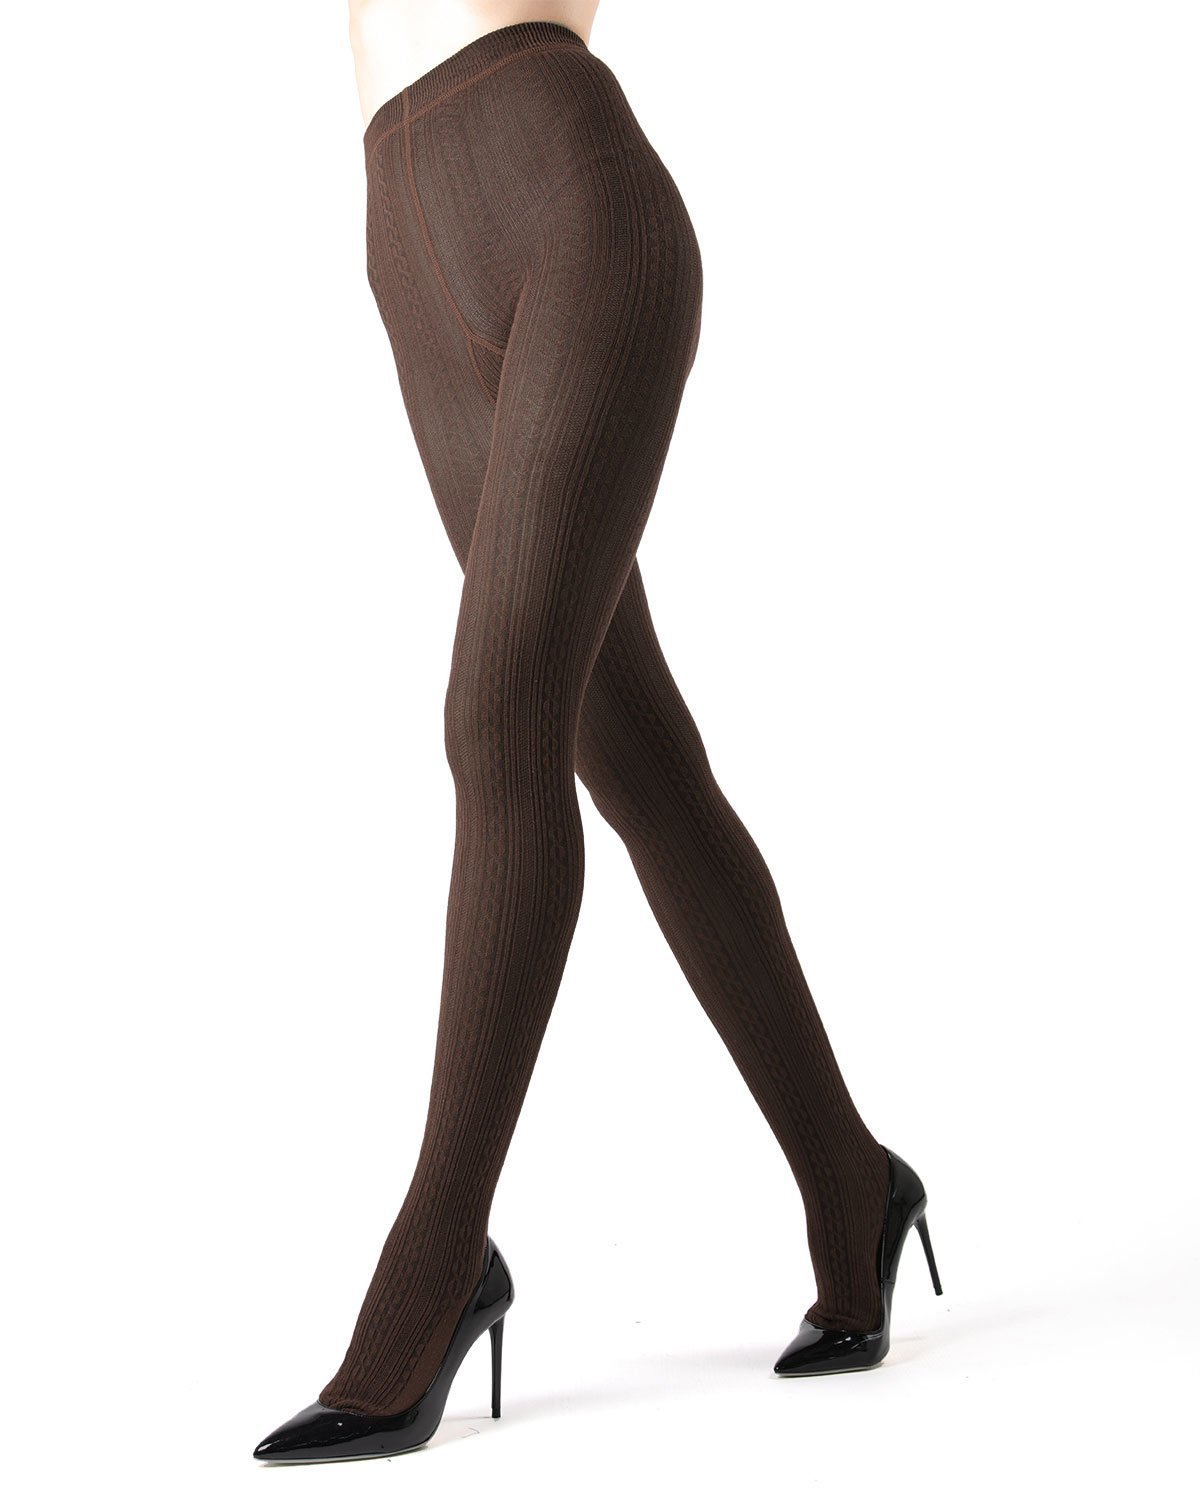 Memoi Toronto Cable Sweater Tights | Women's Hosiery - Pantyhose Brown Heather MO 361 Large/XLarge